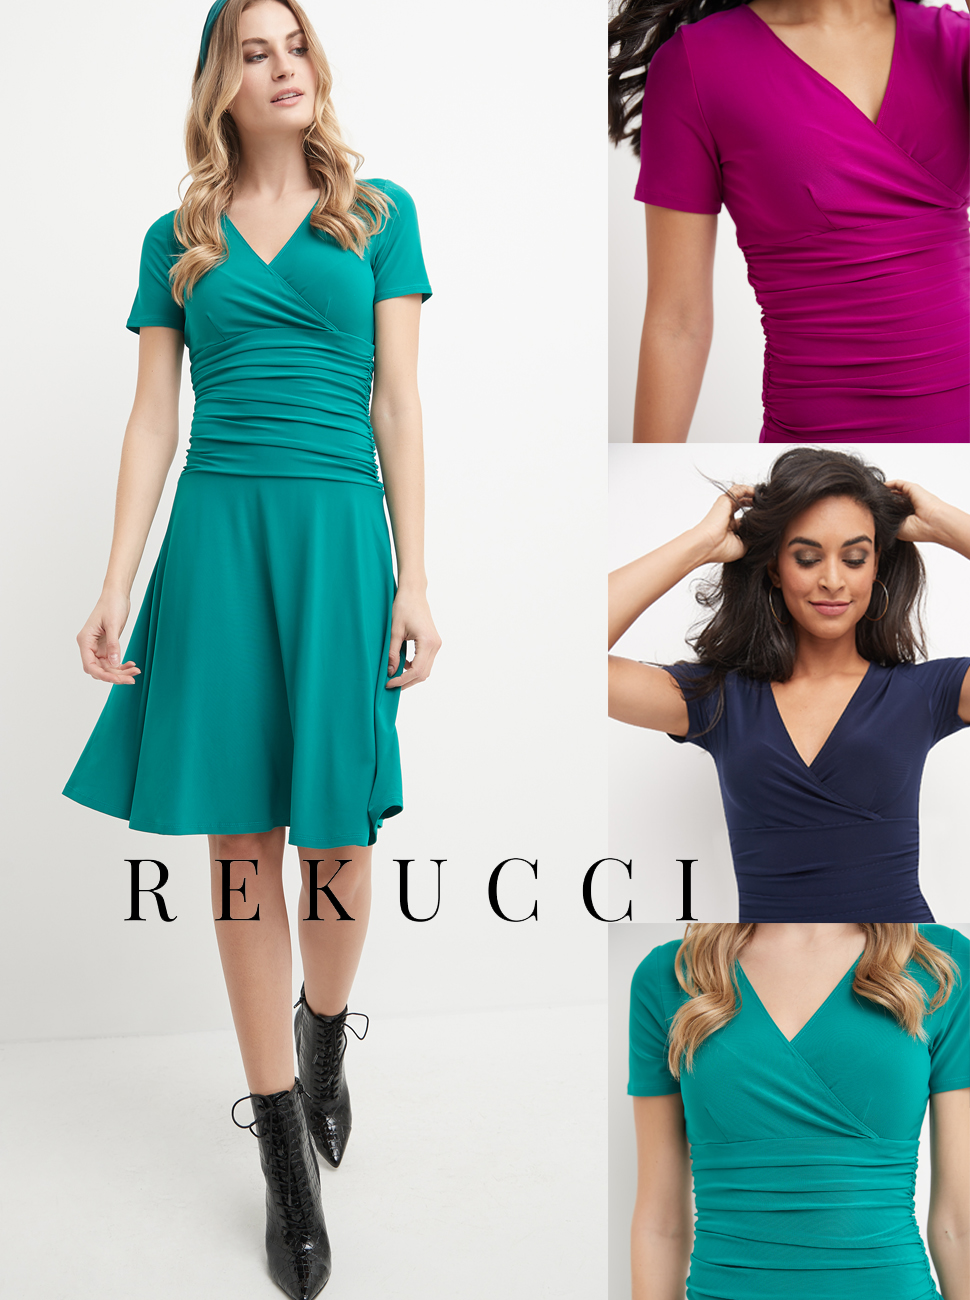 Rekucci short sleeve flippy fit and flare dress